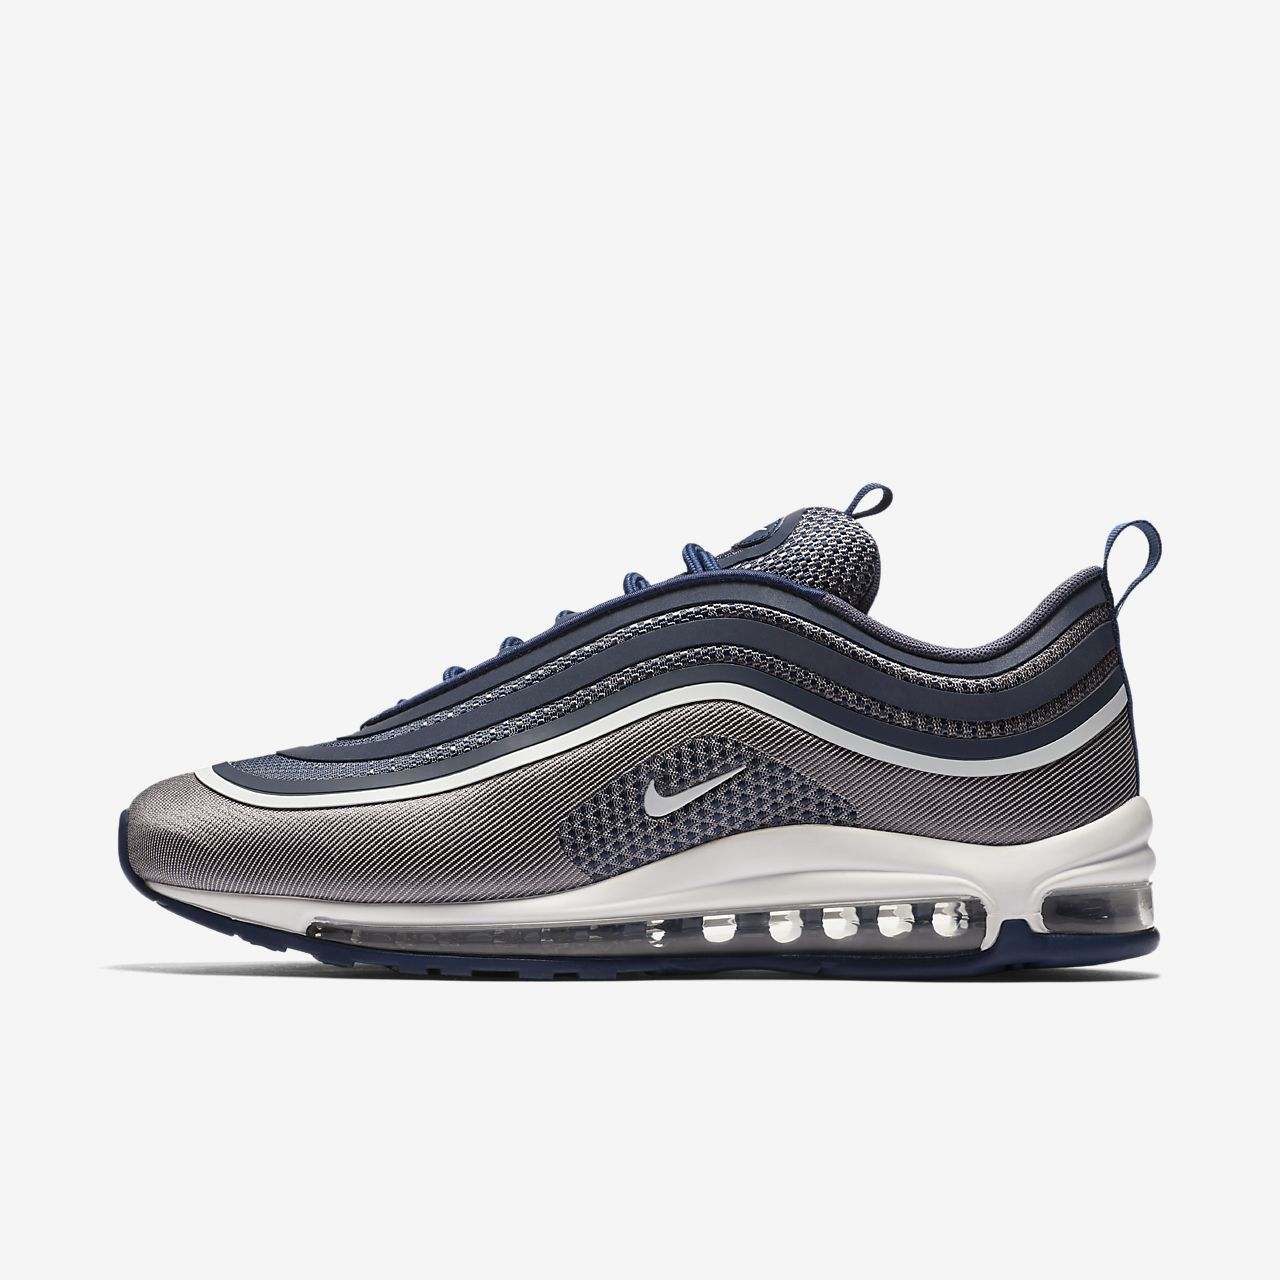 Nike Air Max '97 Women's Running Shoes Metallic Silver/Varsity